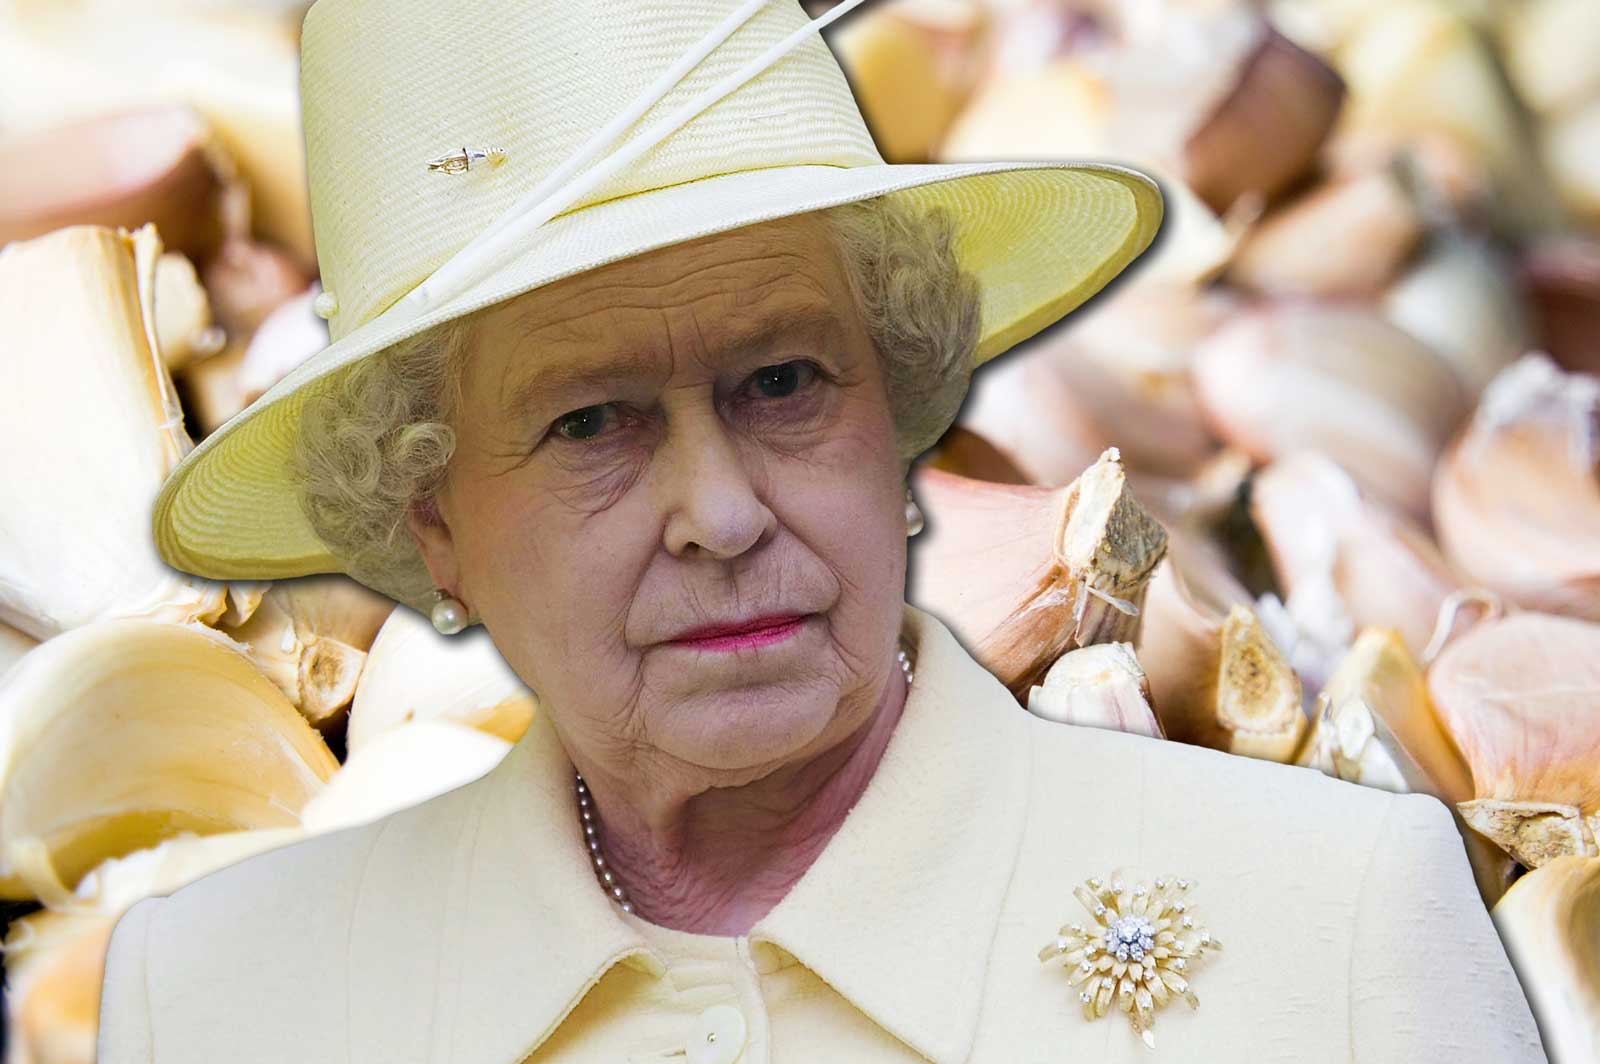 Garlic cloves and Queen Elizabeth II